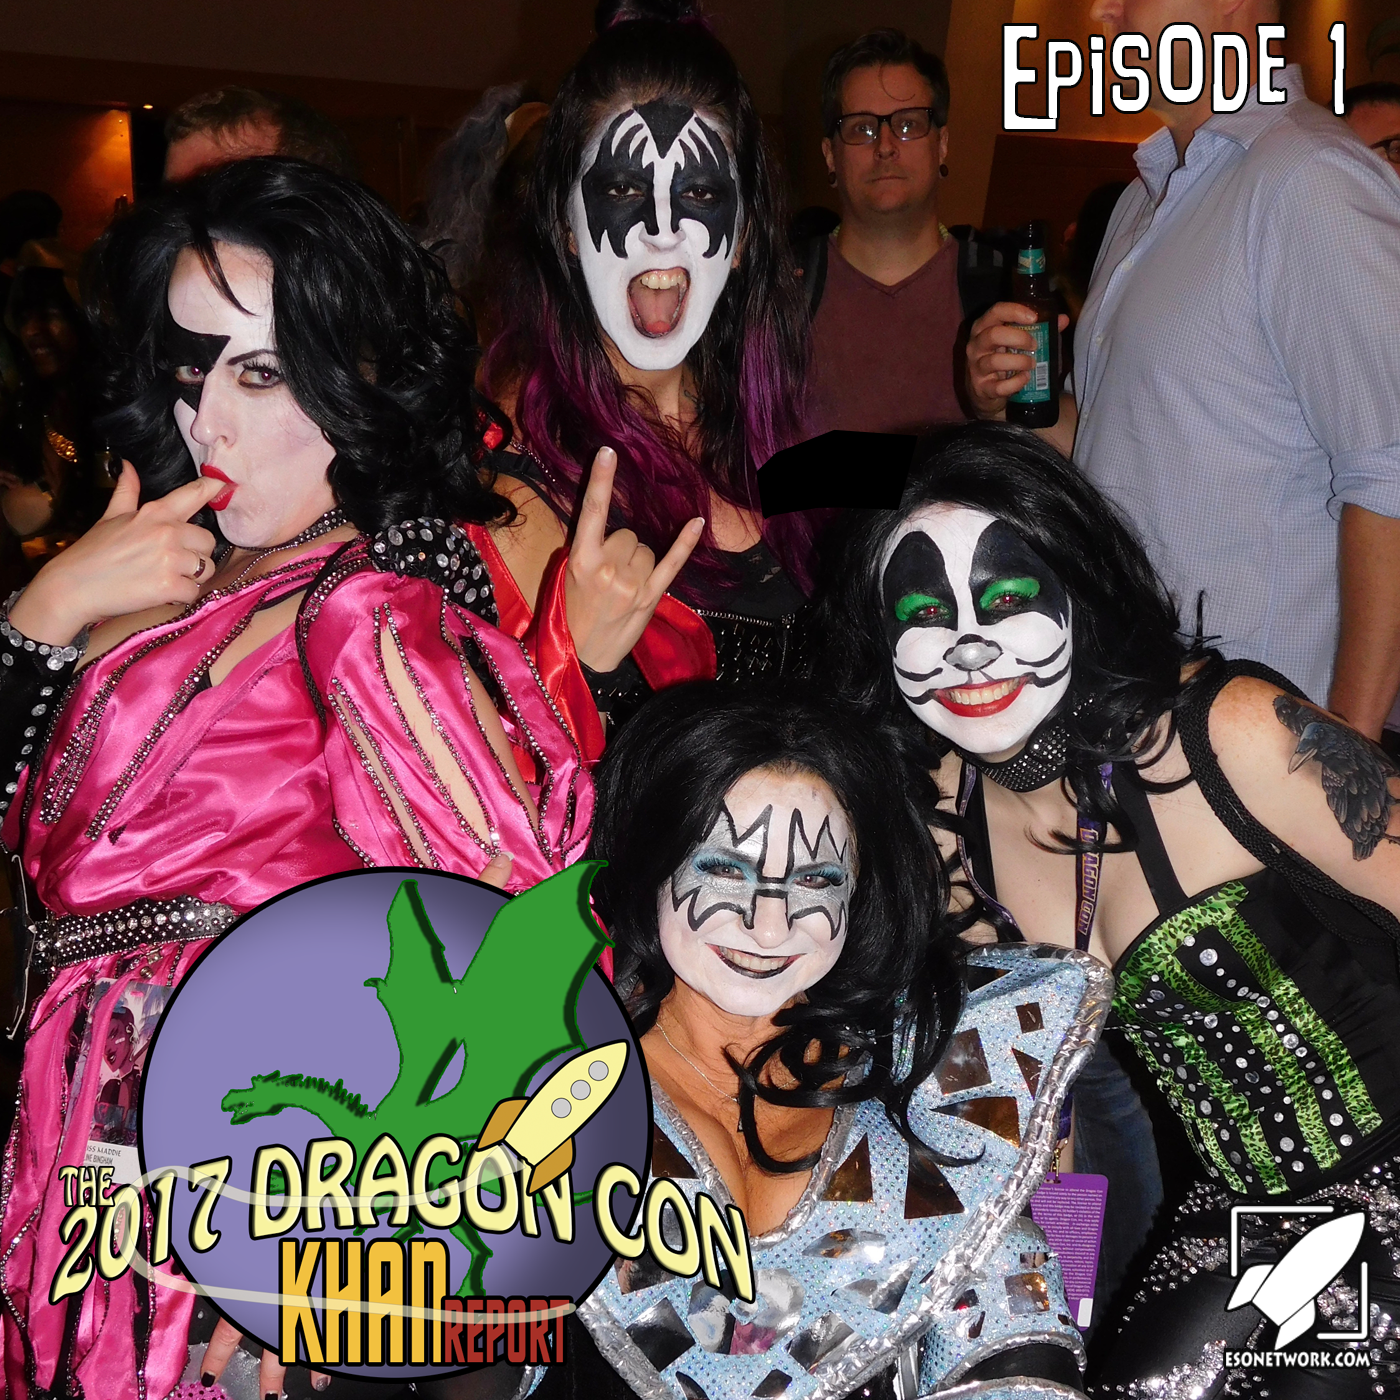 The 2017 Dragon Con Khan Report Ep 1